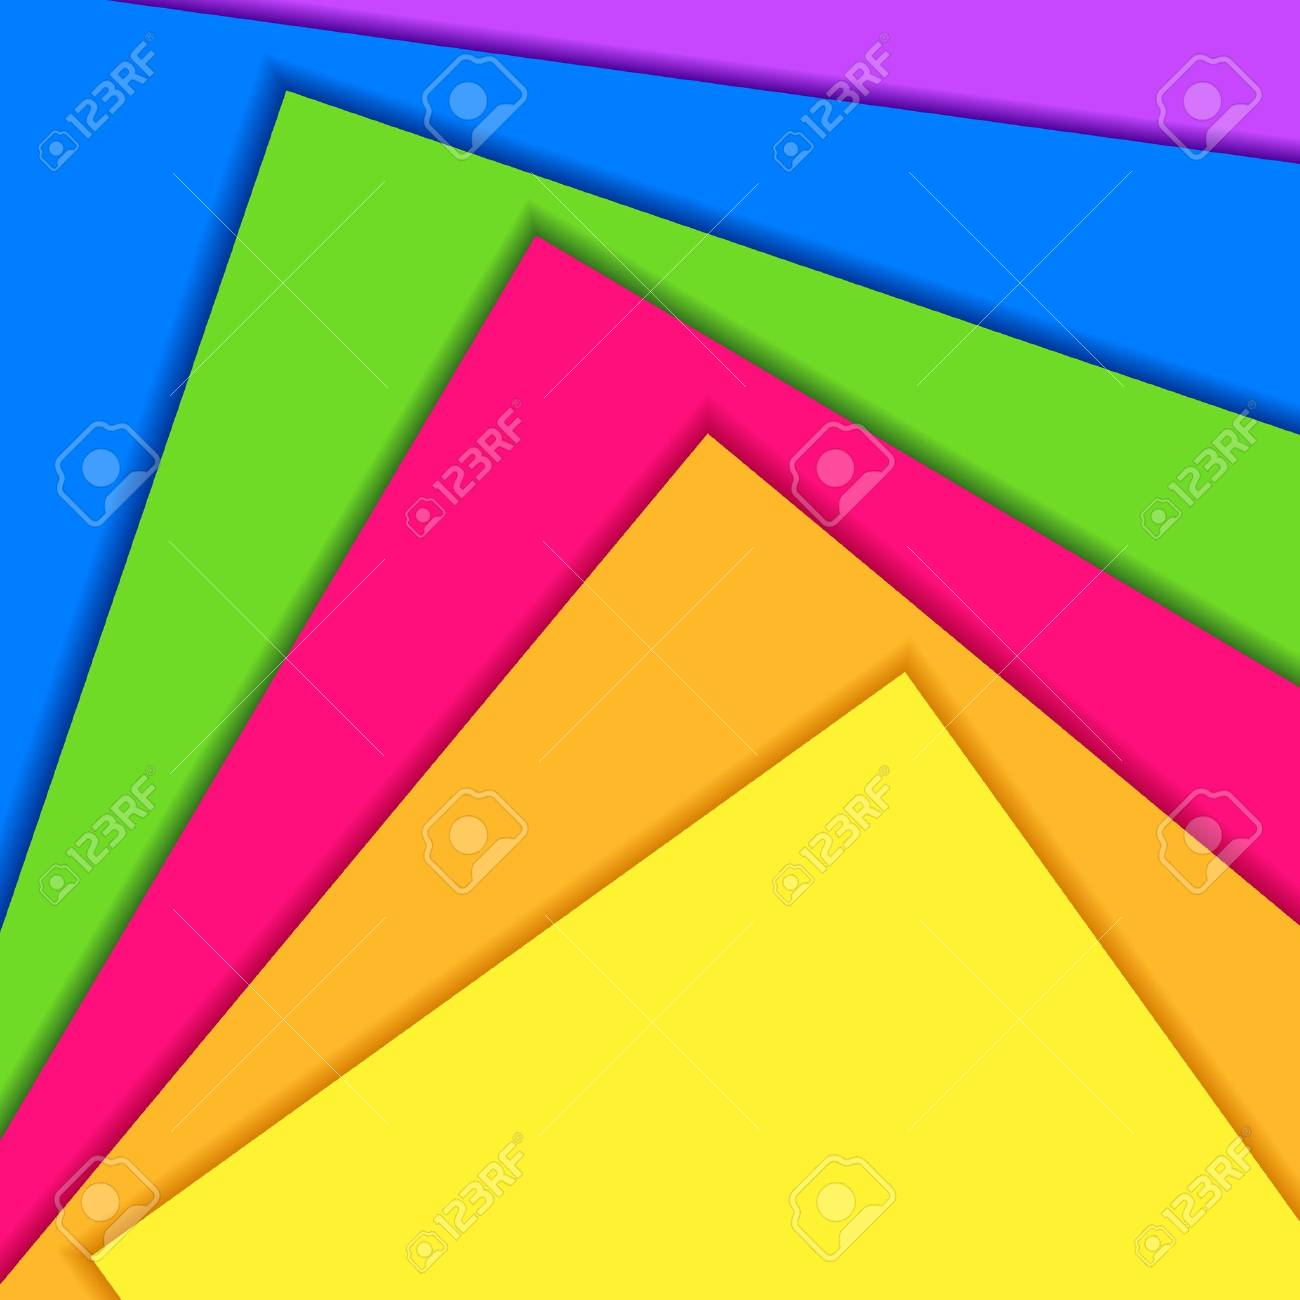 illustration of colorful paper in abstract background Stock Vector - 12492922